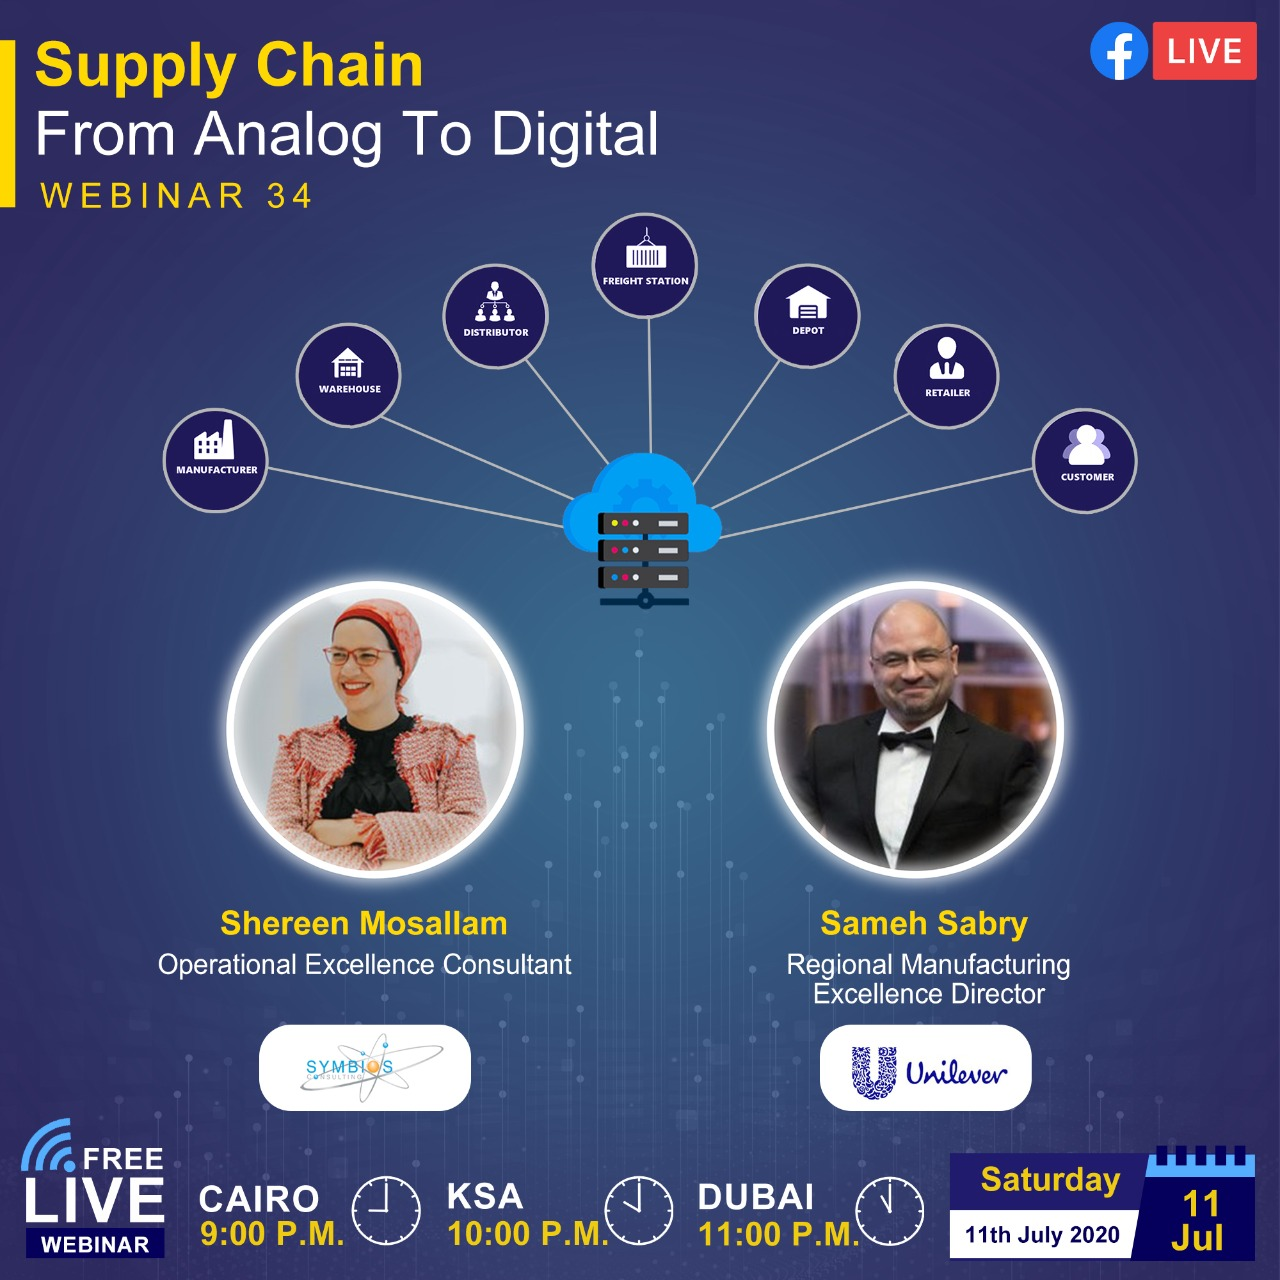 Supply Chain from Analog to Digital